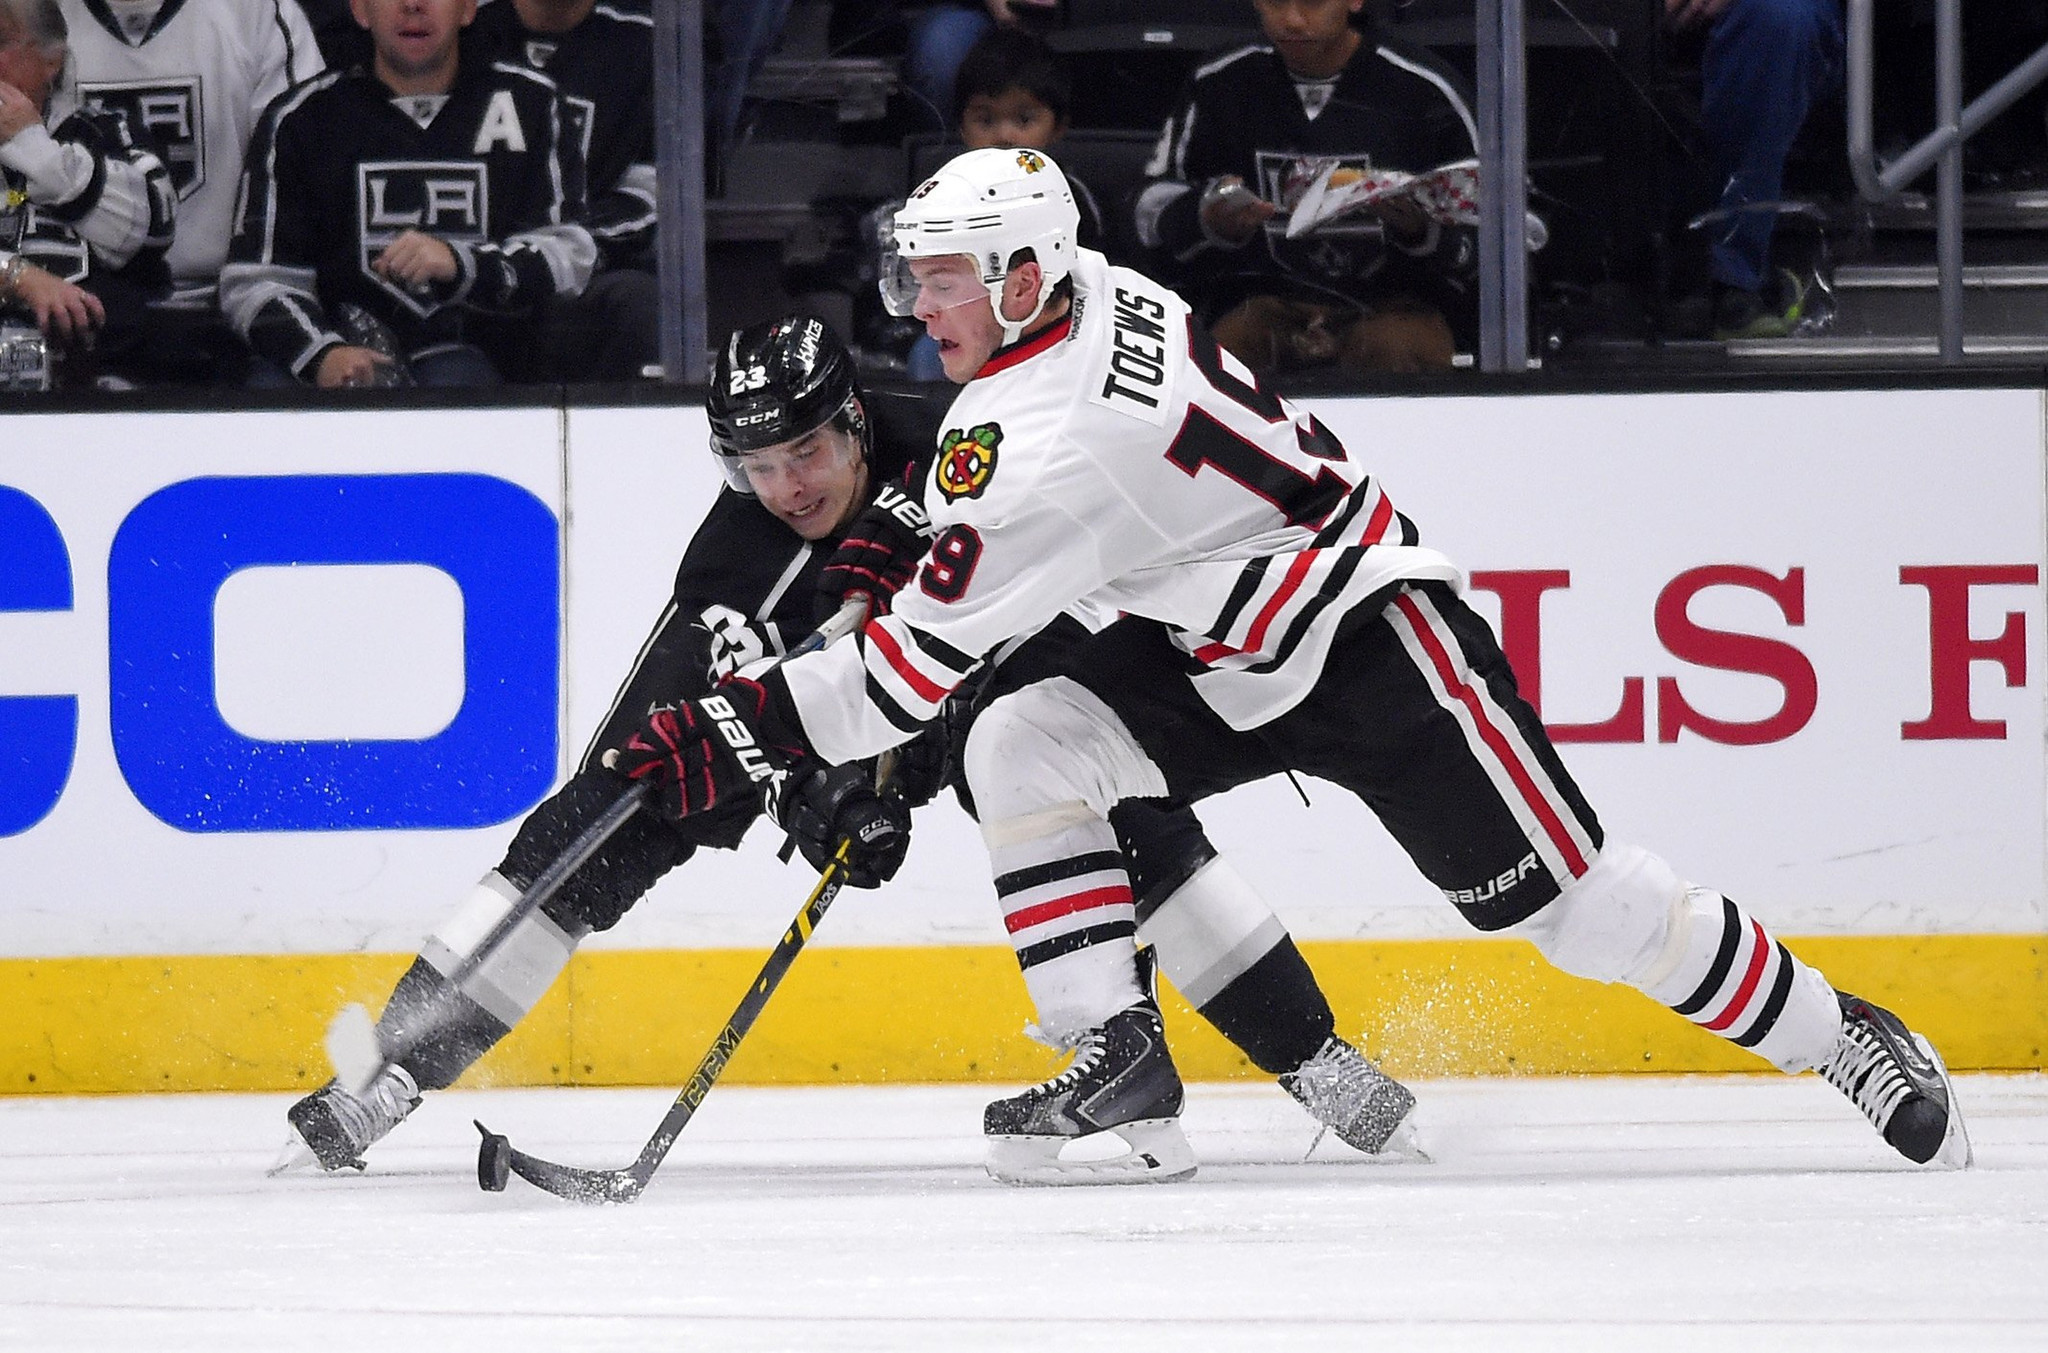 Kings Come Up Big At End Against Chicago Blackhawks